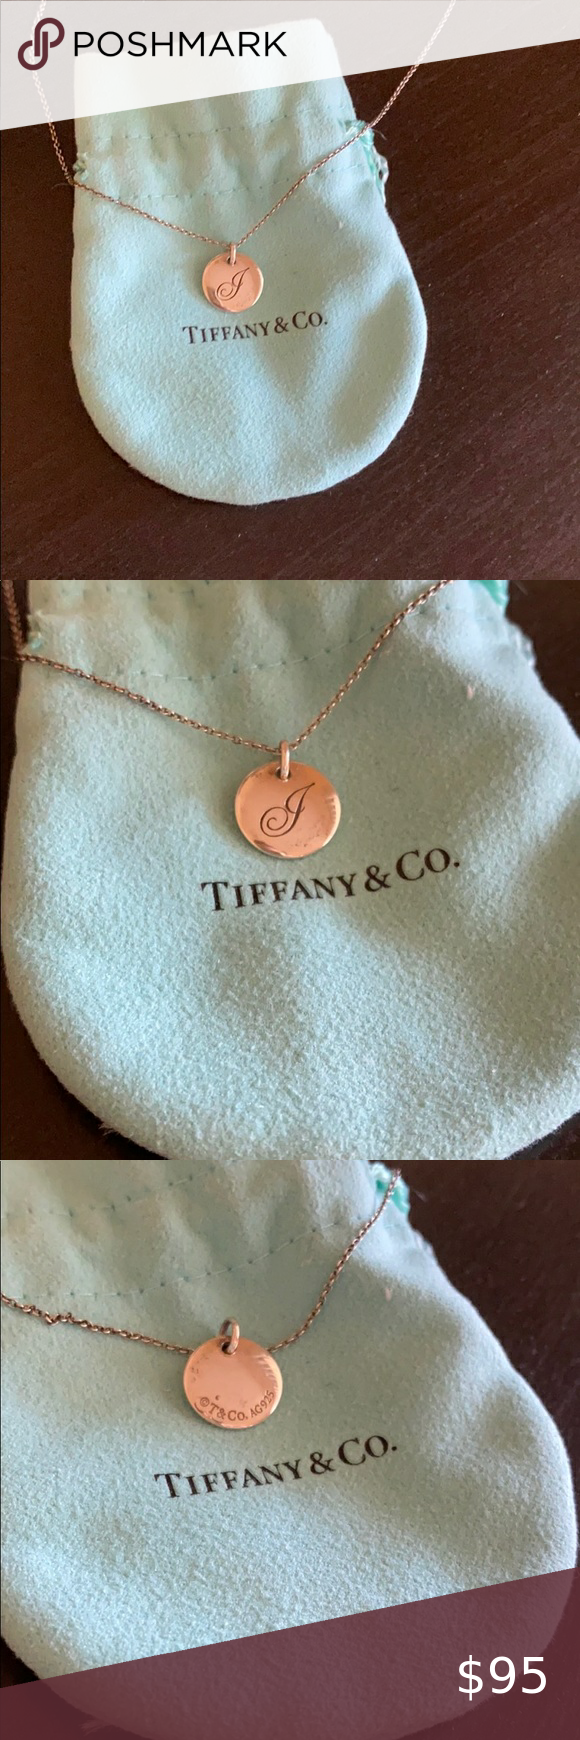 "J And Co Jewelry : jewelry, Initial, Charm, ""J"", Tiffany, Necklace, Necklace,, Charm,"